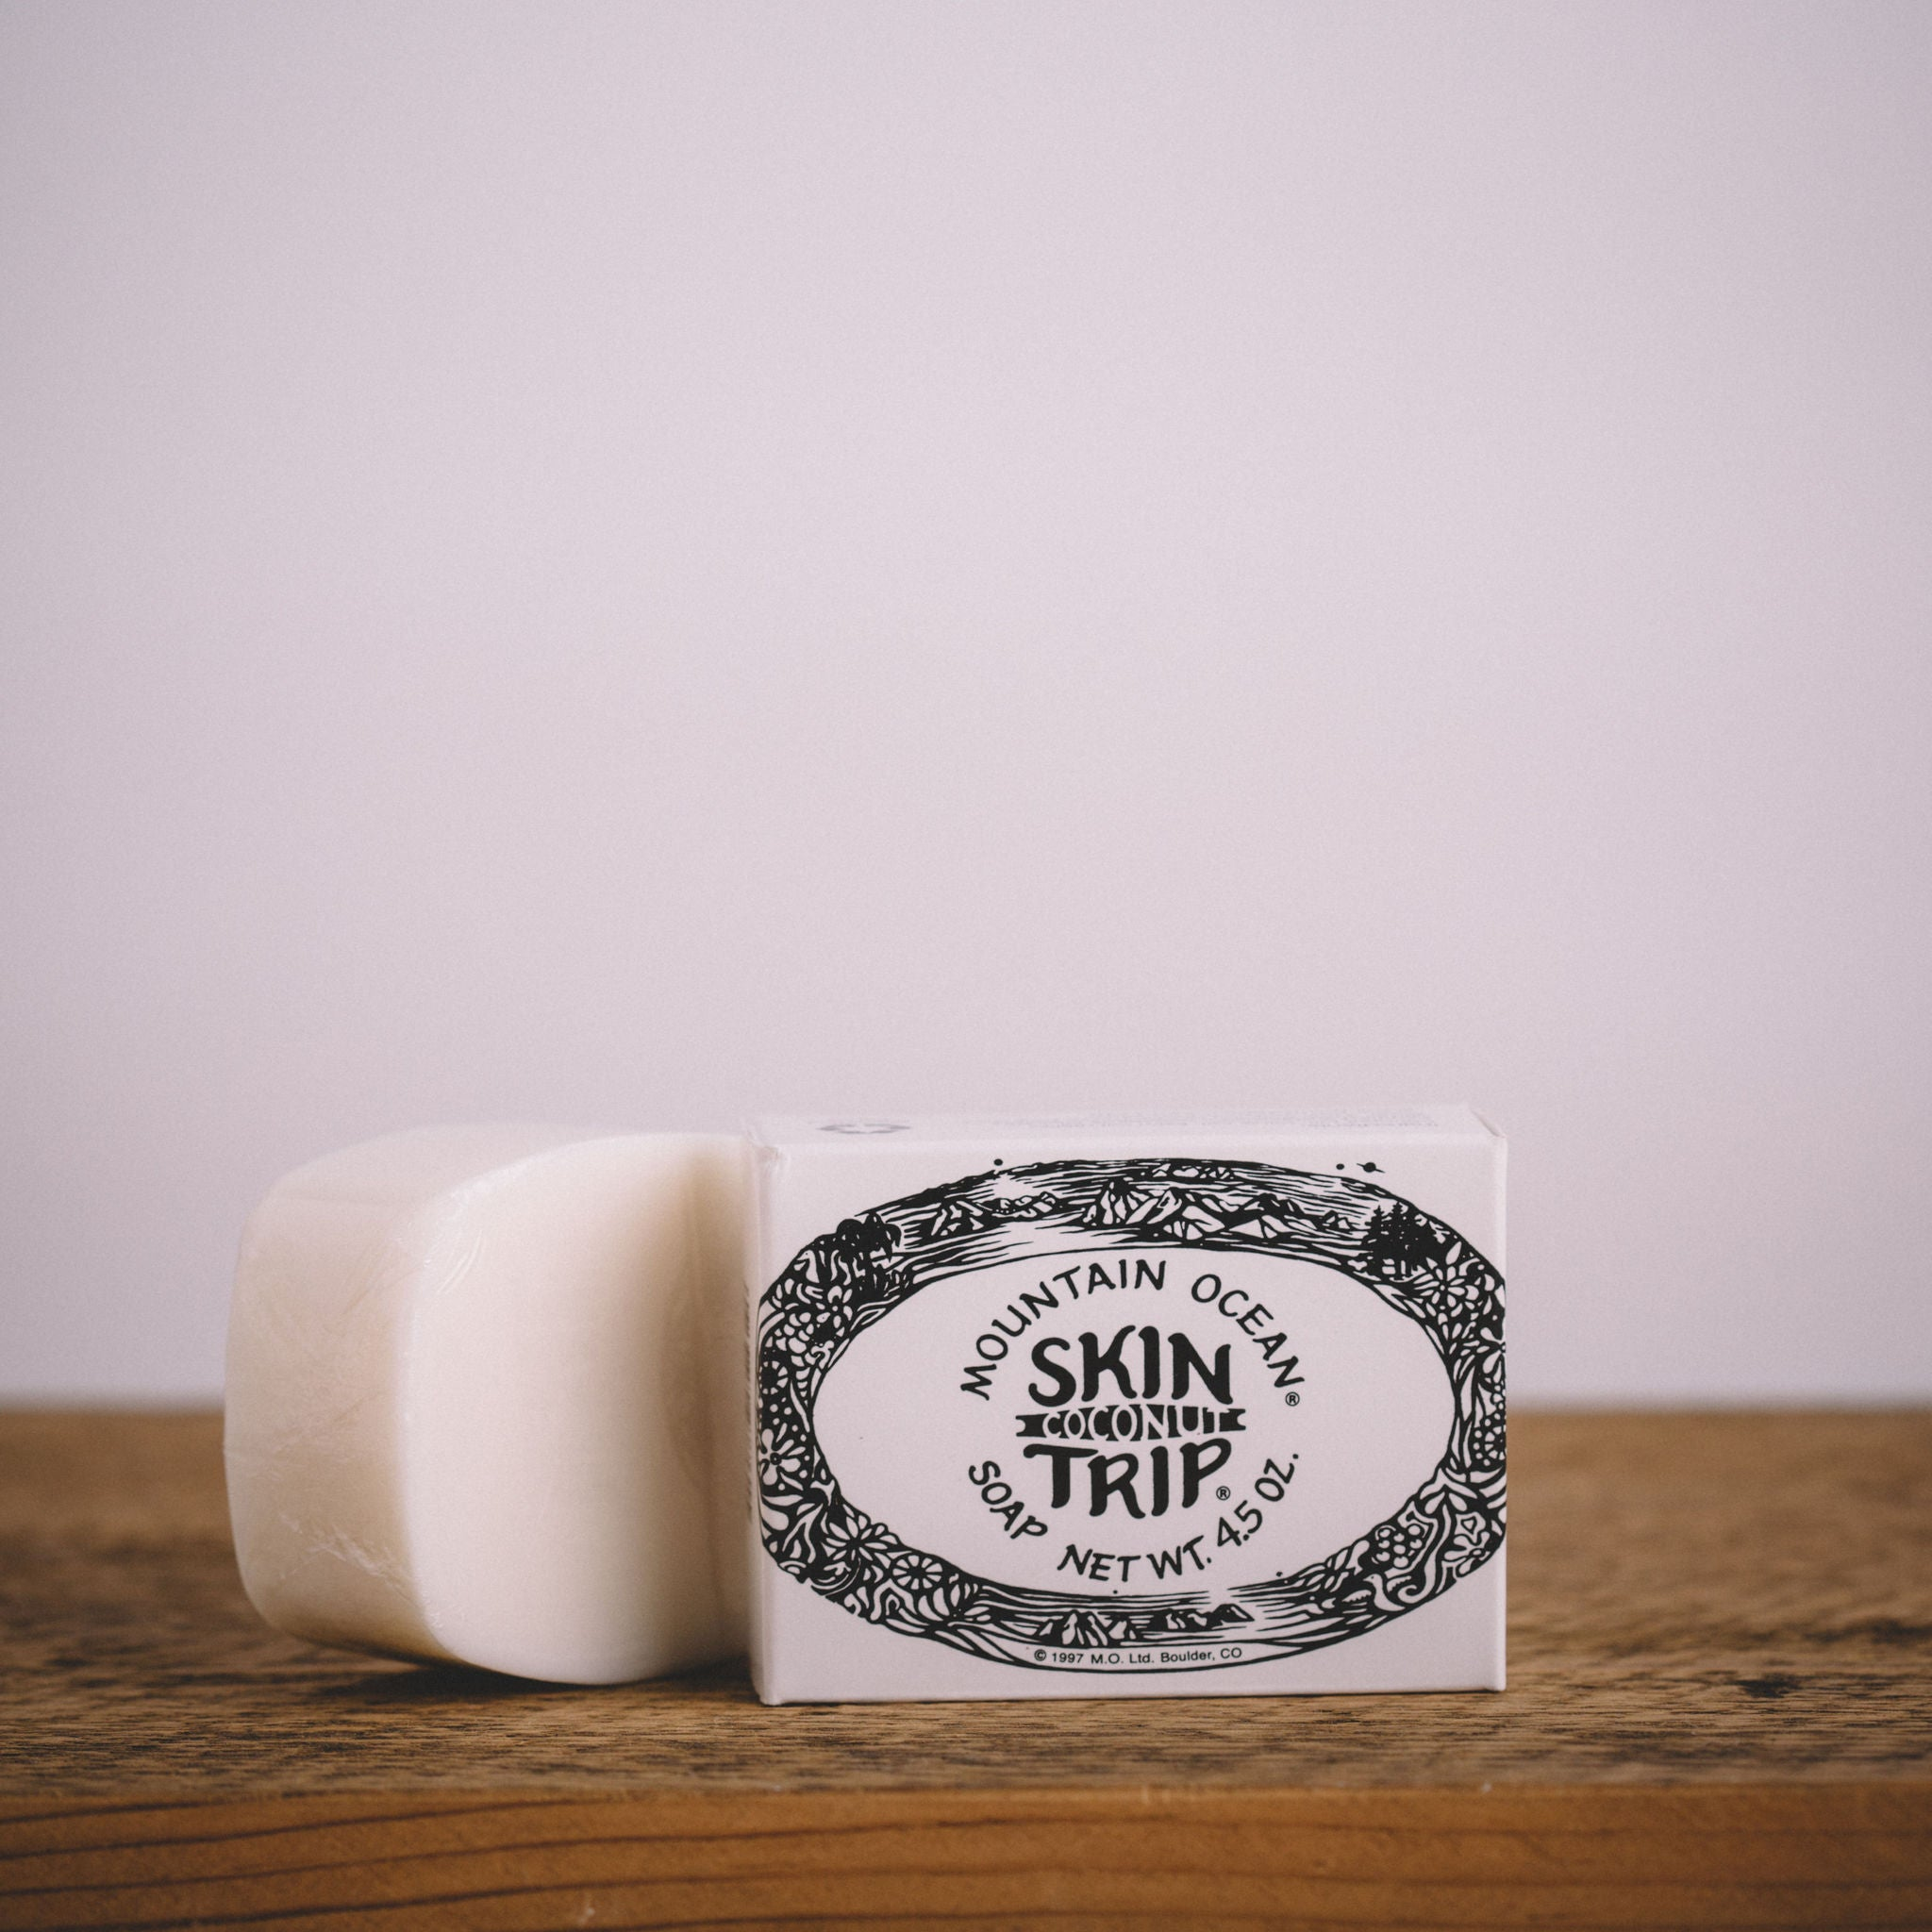 MOUNTAIN OCEAN || COCONUT SKIN TRIP SOAP